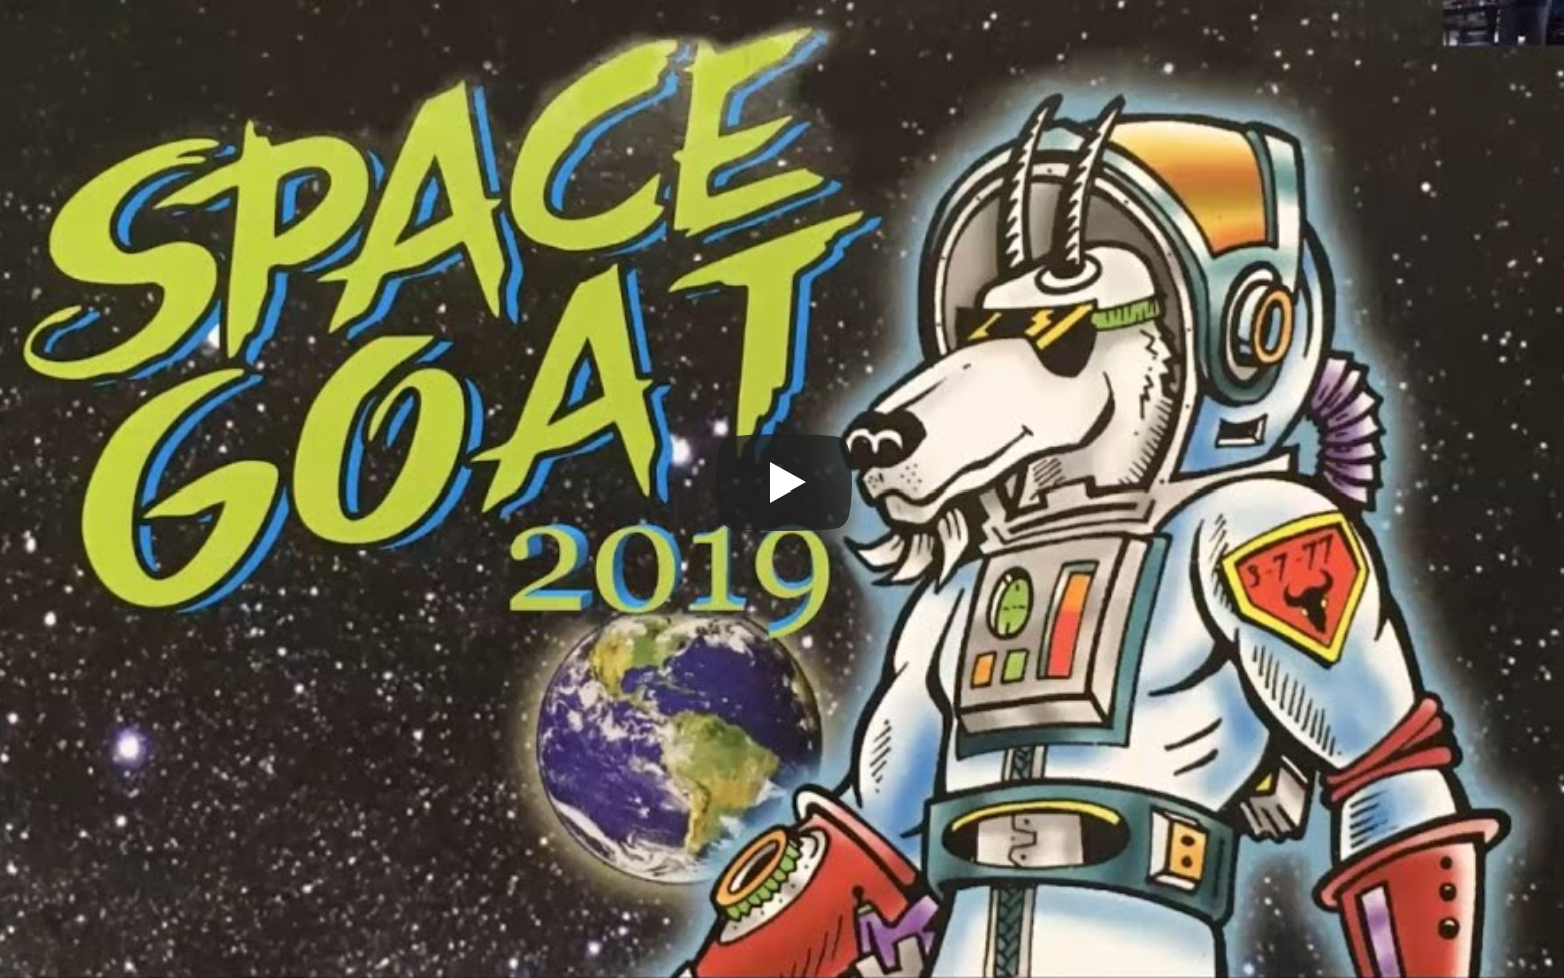 Daryl Greaser: Spacegoat 2019: Return to Scapegoat